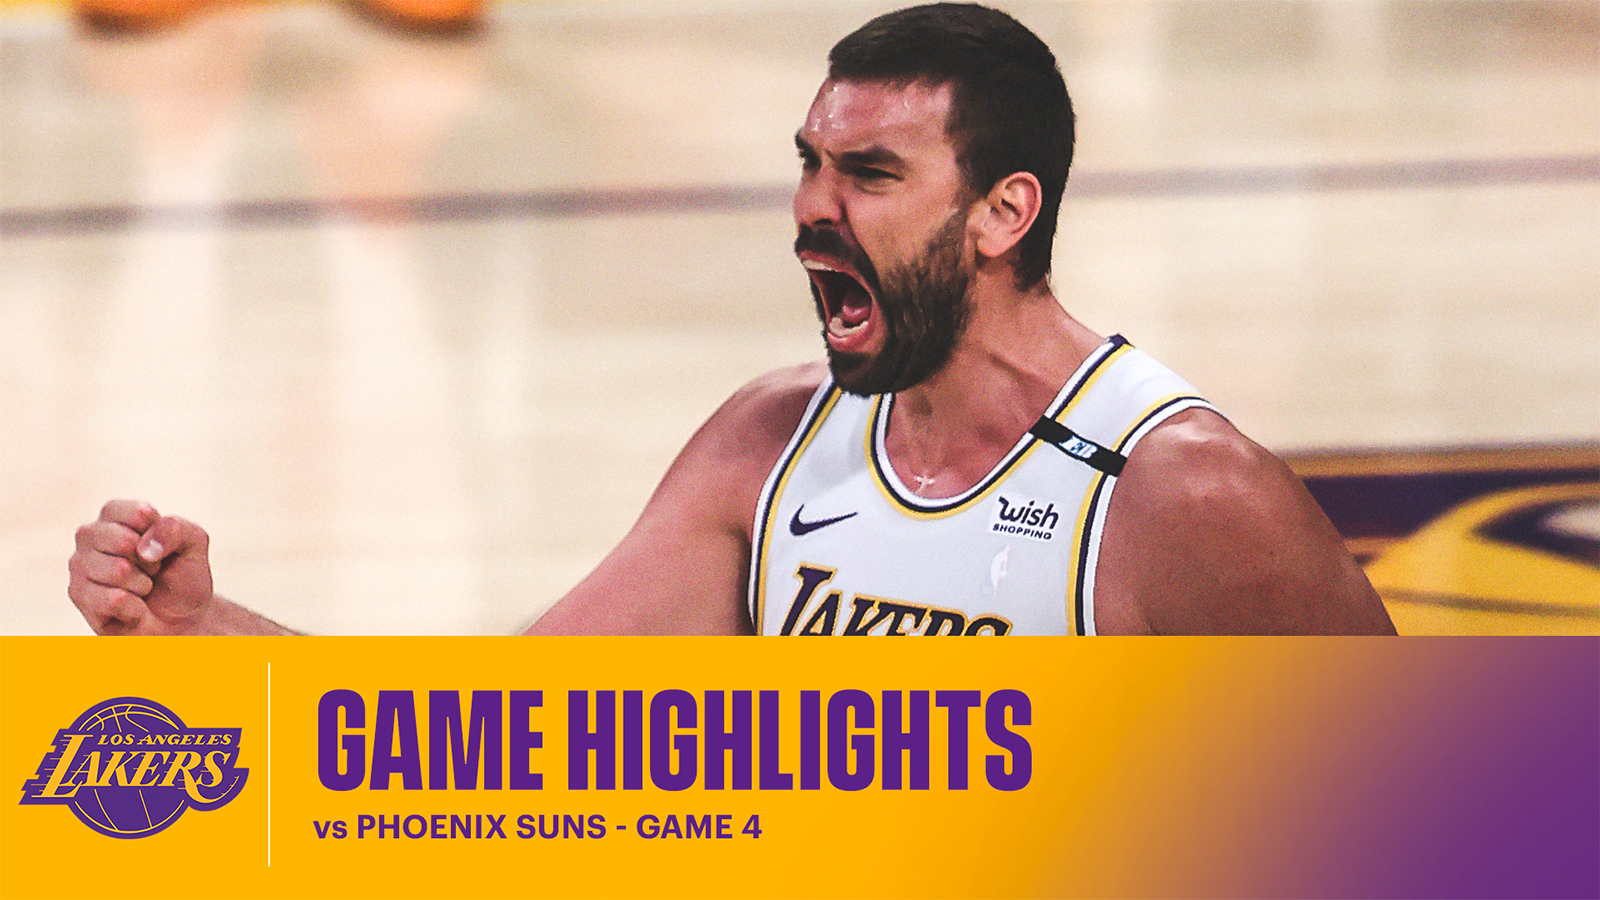 HIGHLIGHTS | Los Angeles Lakers vs Phoenix Suns - Game 4